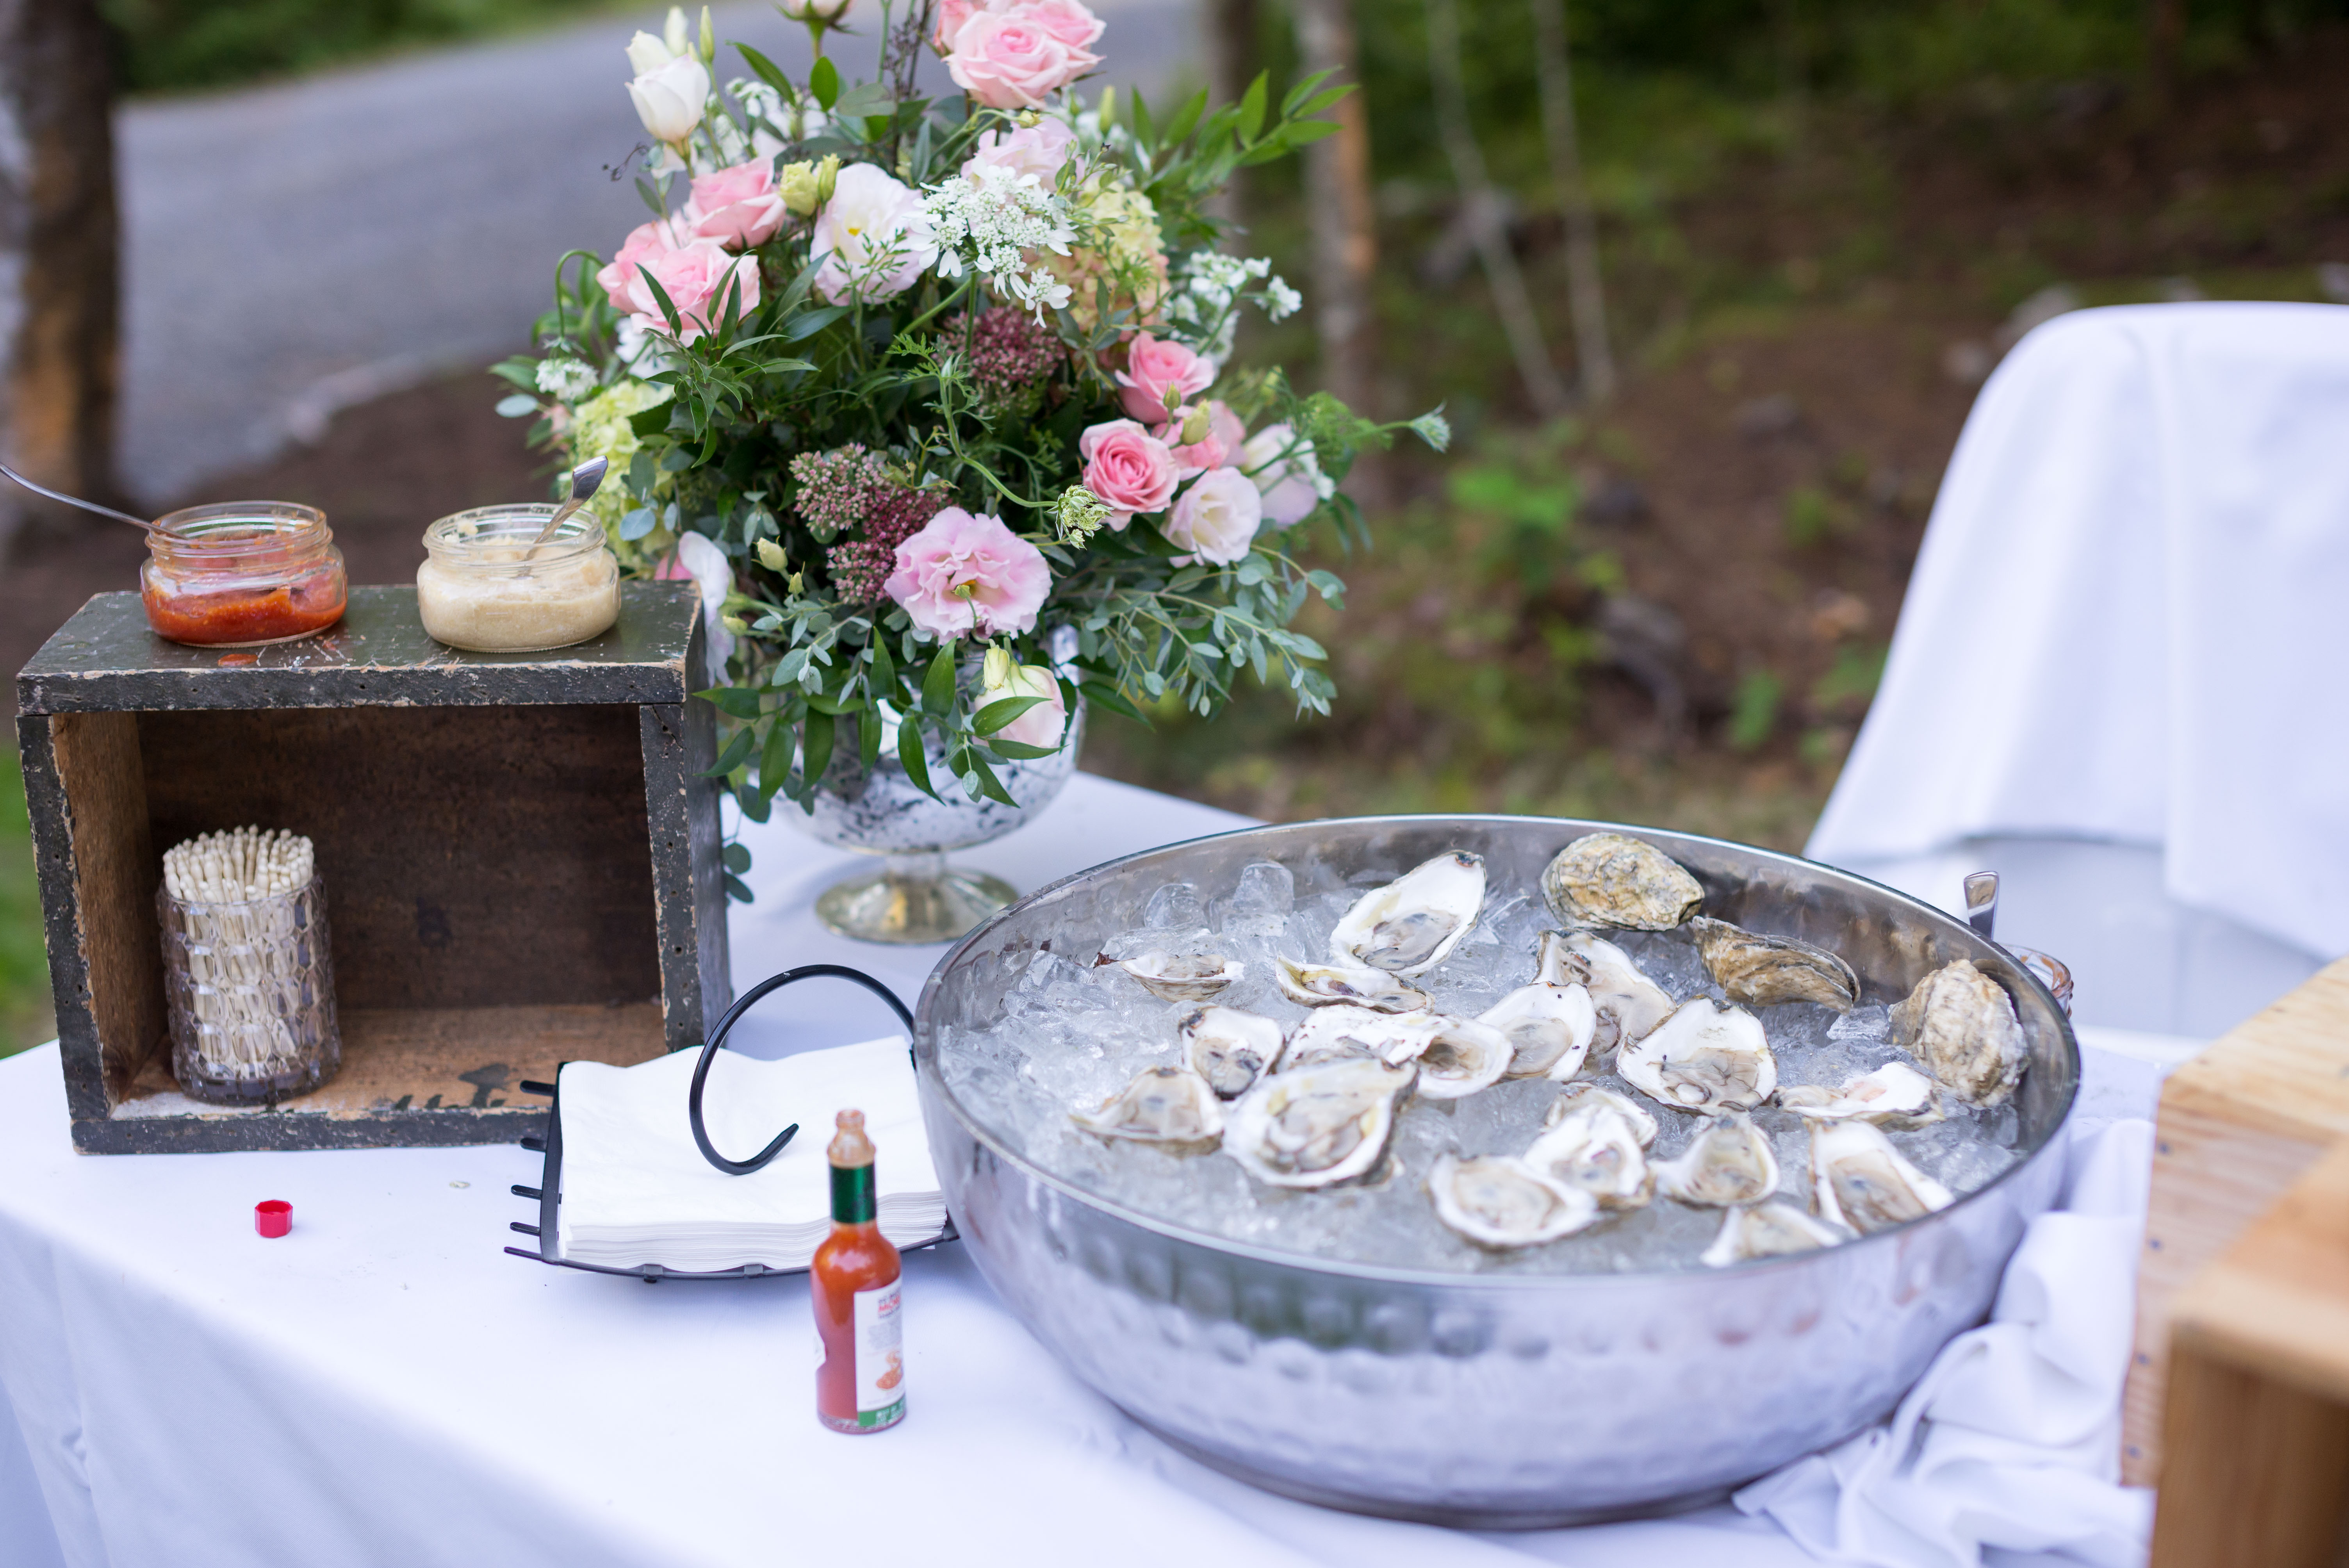 maine weddings, maine catering, midcoast caterer, Midcoast Maine Wedding, Maine wedding planner, Maine wedding Blogger, Sweetest thing Weddings, Real Maine wedding, Get local Food, Stone Cove Catering